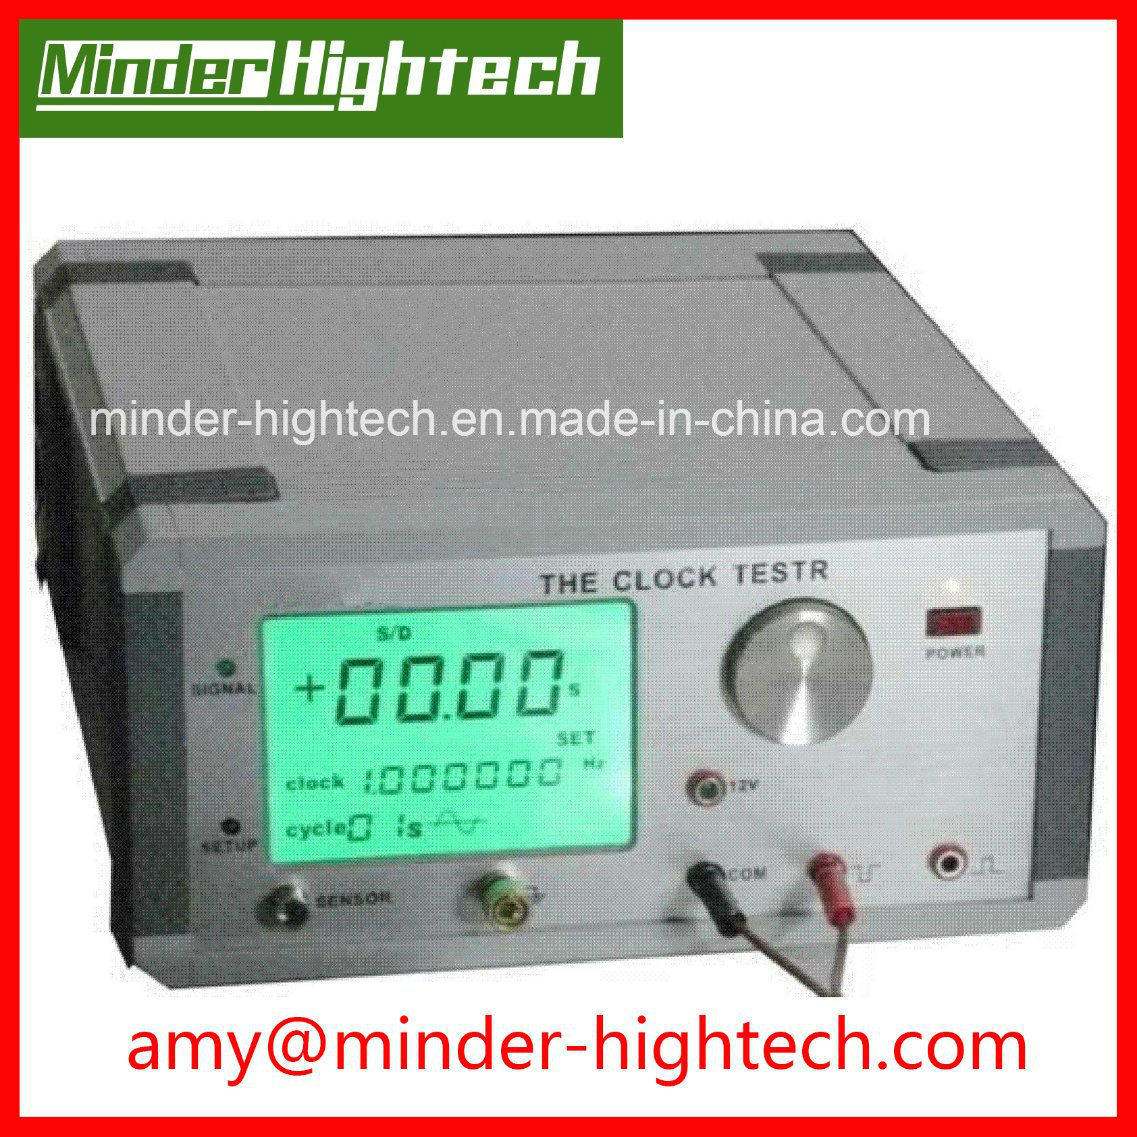 China Md 8b Clock Tester For Precisely Testing Circuits With Images Crystal Oscillator Working At 32768khz And 1hz